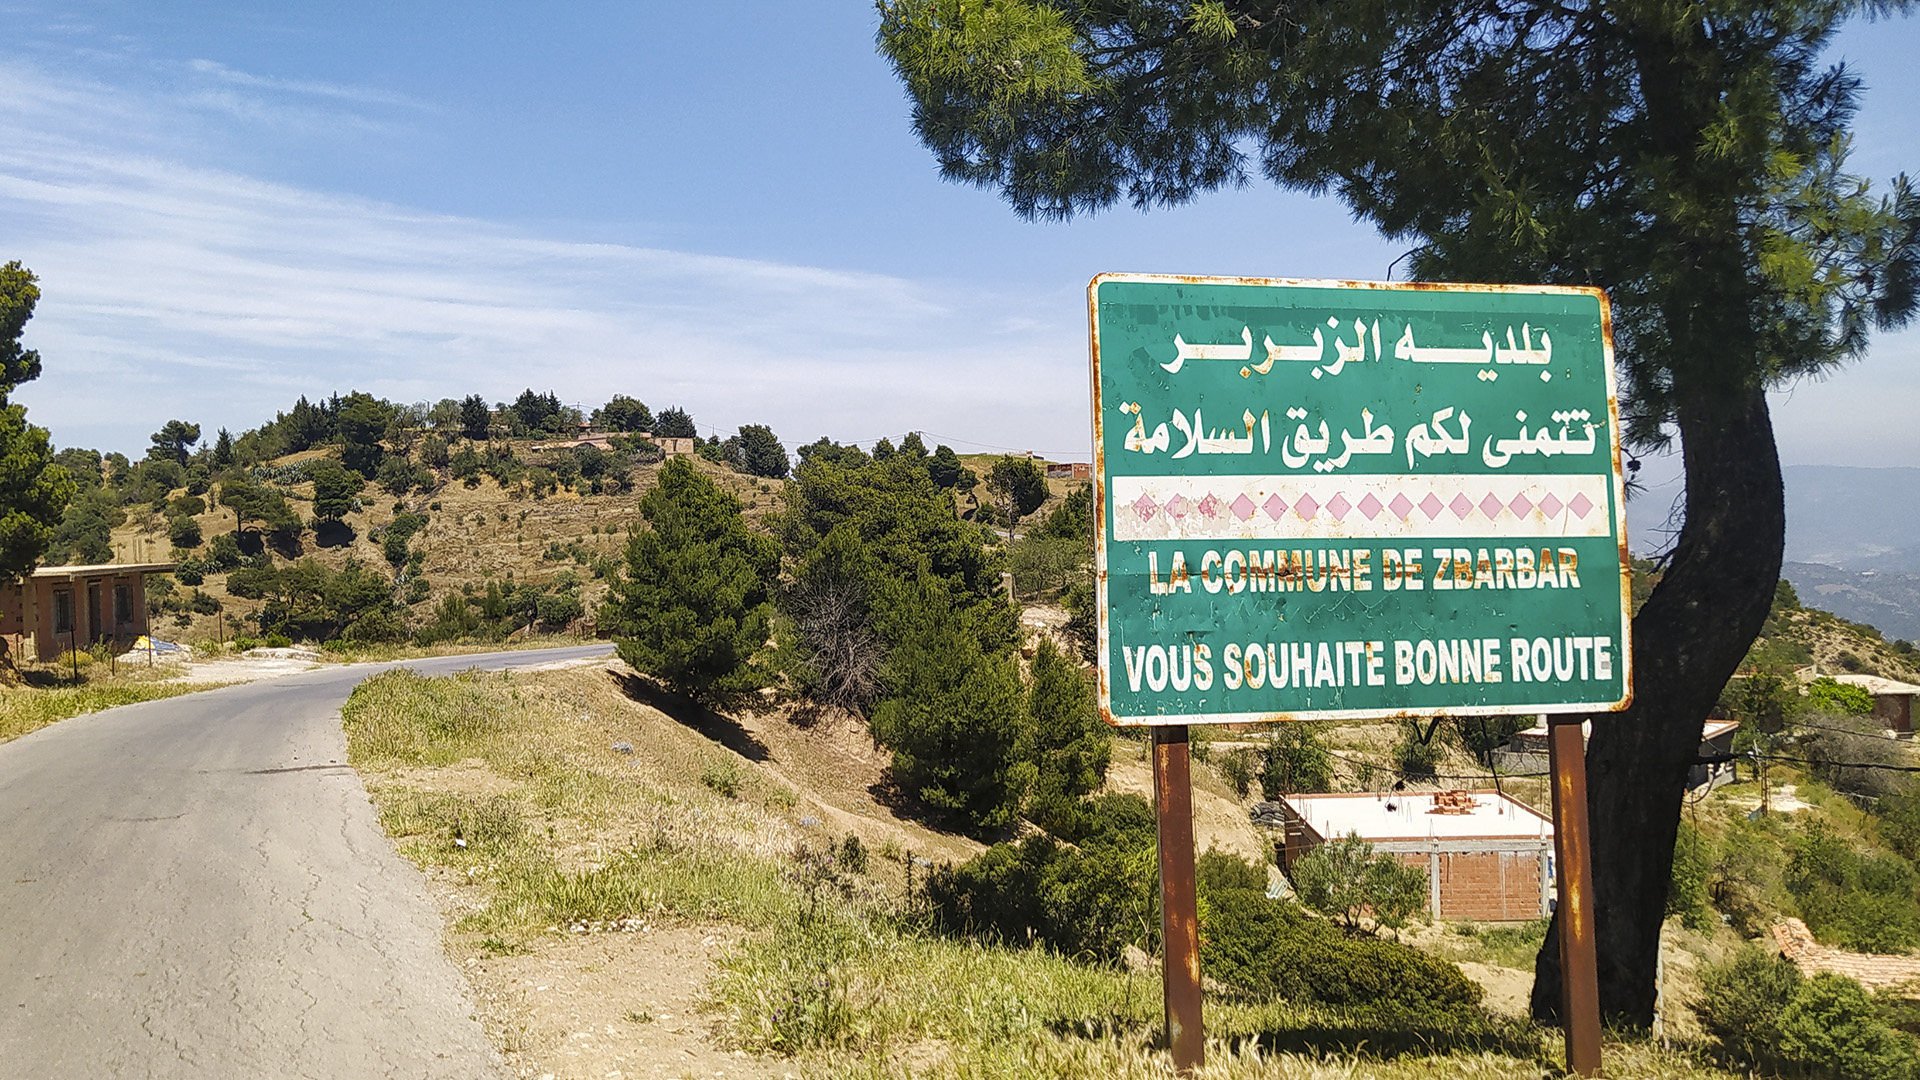 Zbarbar: A Small Town Brutalized During The 1990s Algerian Civil War Finds Peace